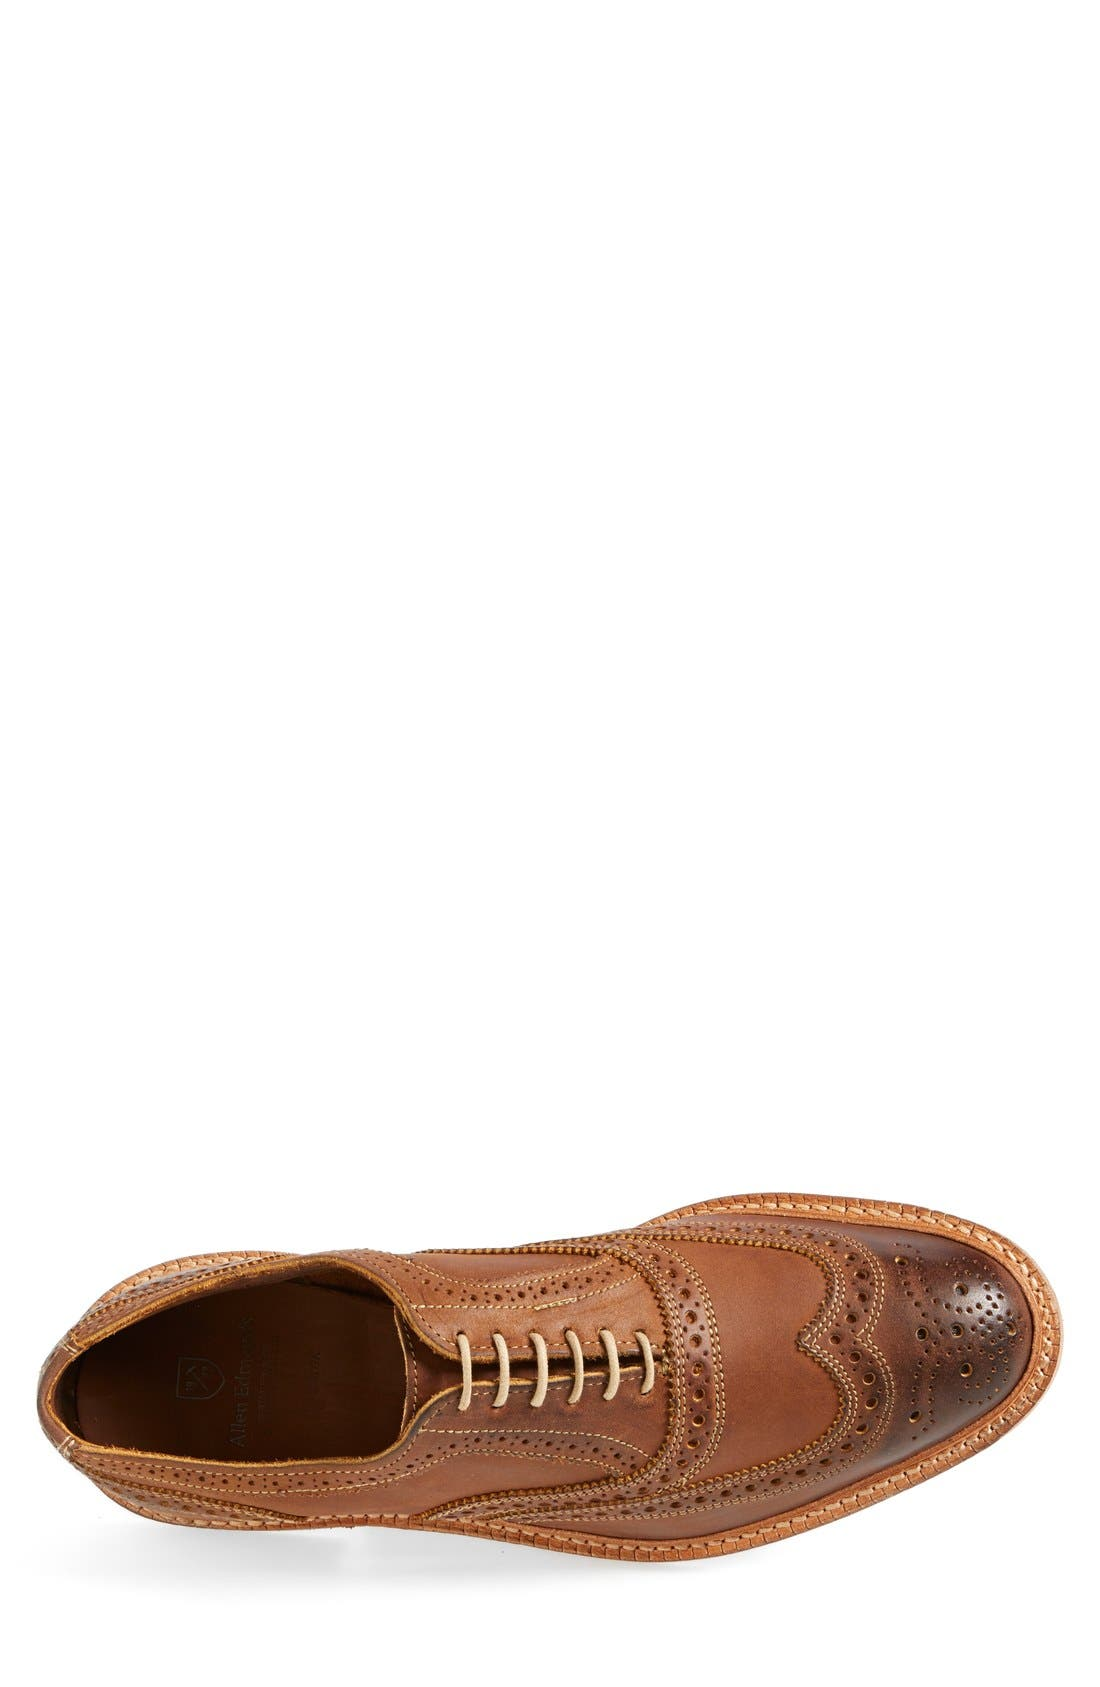 Alternate Image 3  - Allen Edmonds 'Neumok' Wingtip (Men) (Nordstrom Exclusive)